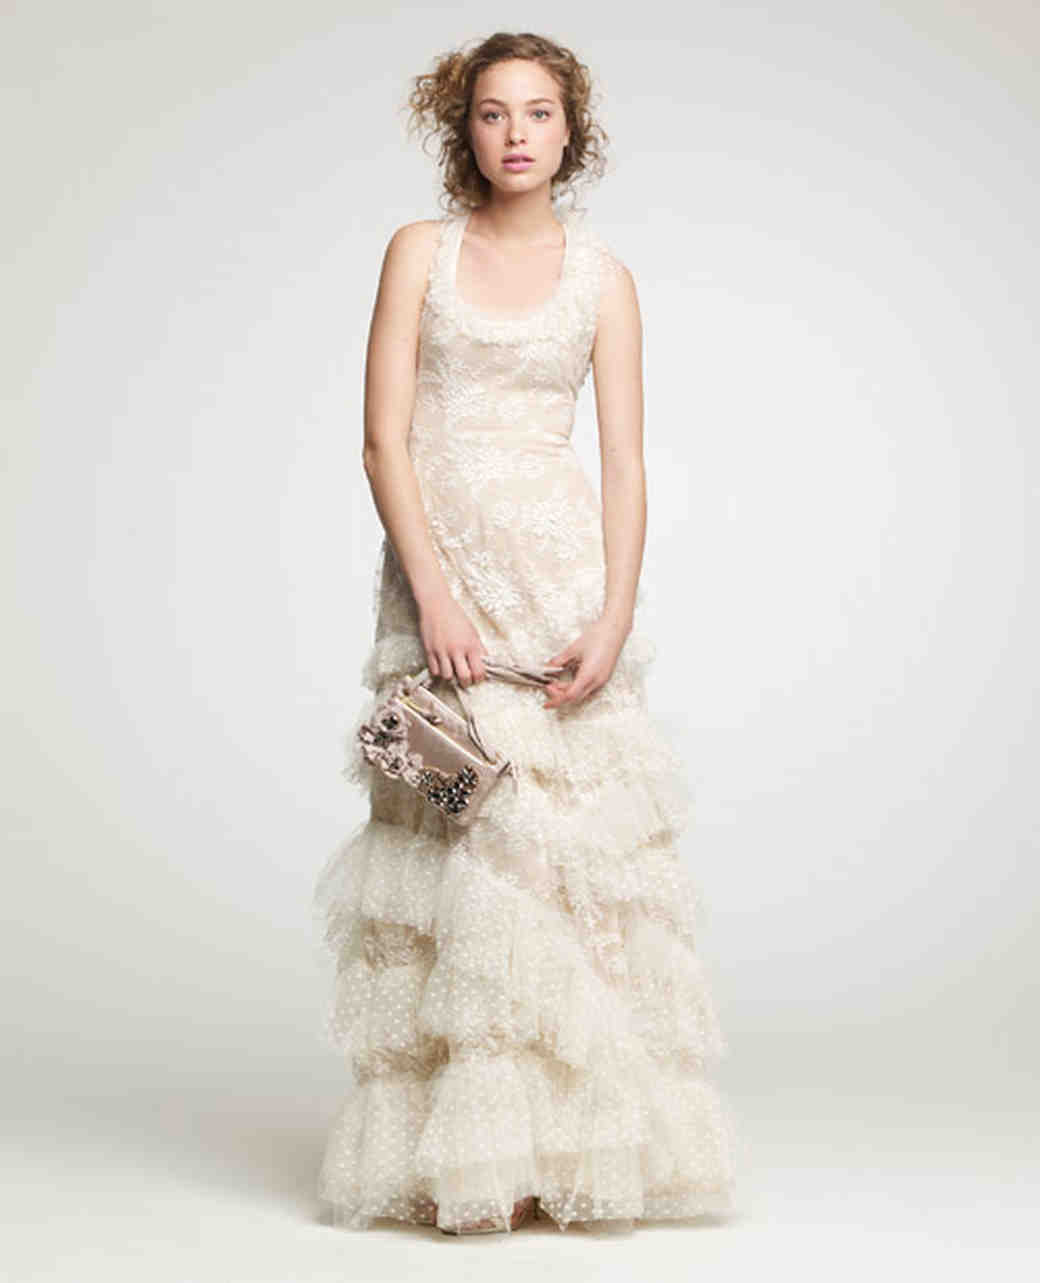 J.Crew, Spring 2011 Collection | Martha Stewart Weddings